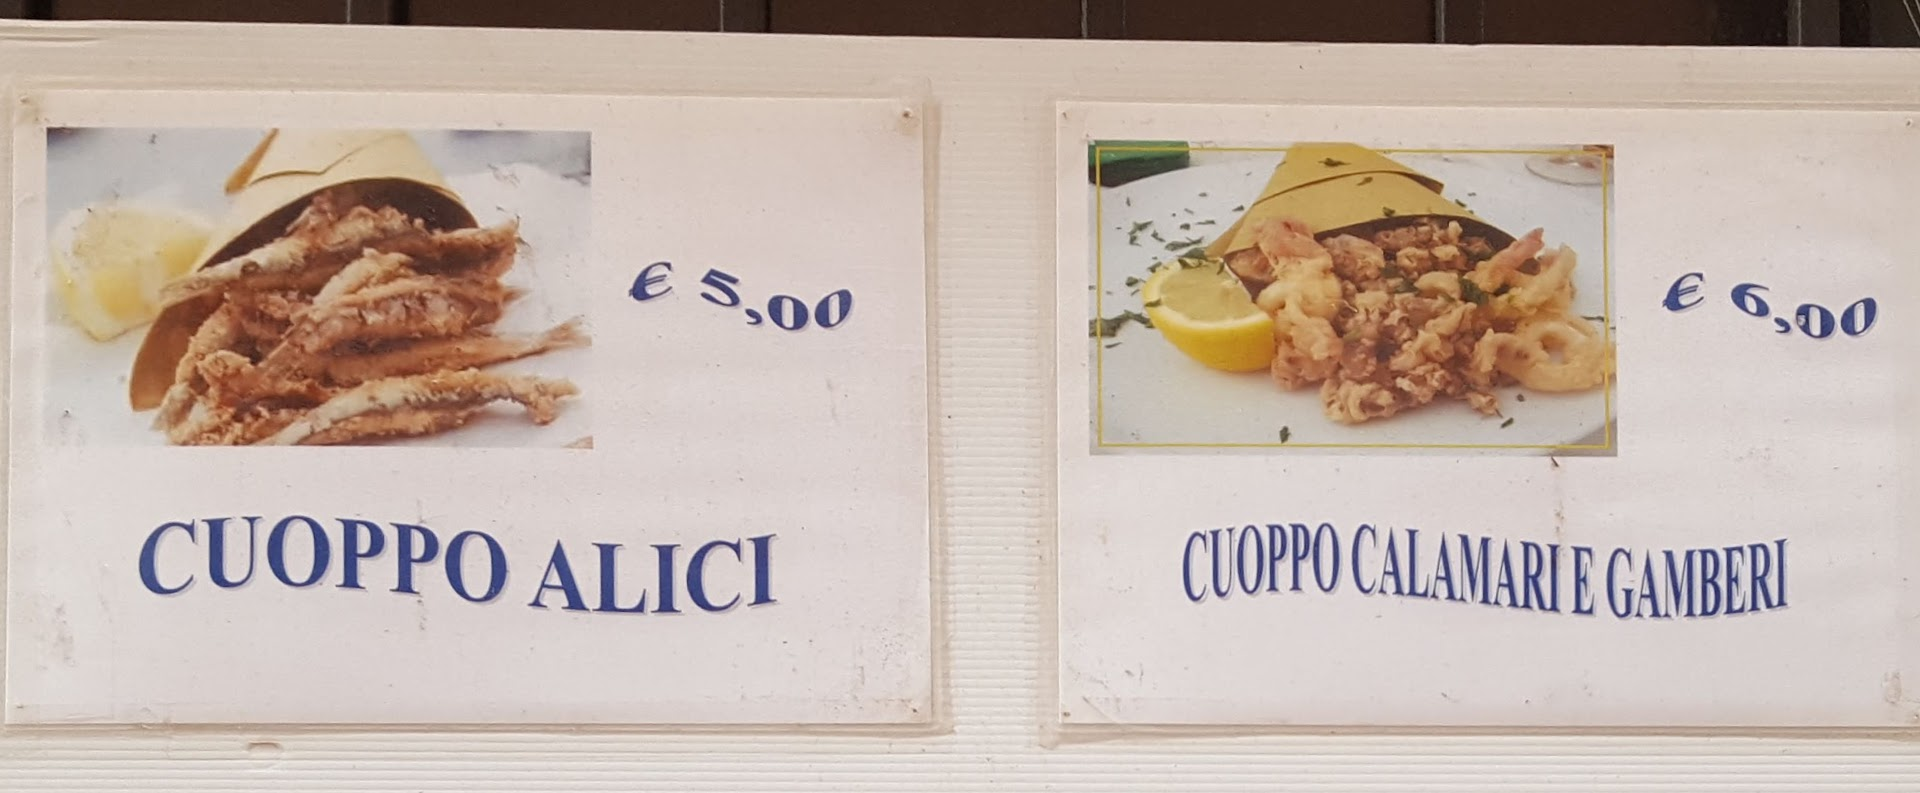 Cuoppo seafood - tradition Southern Italian food.